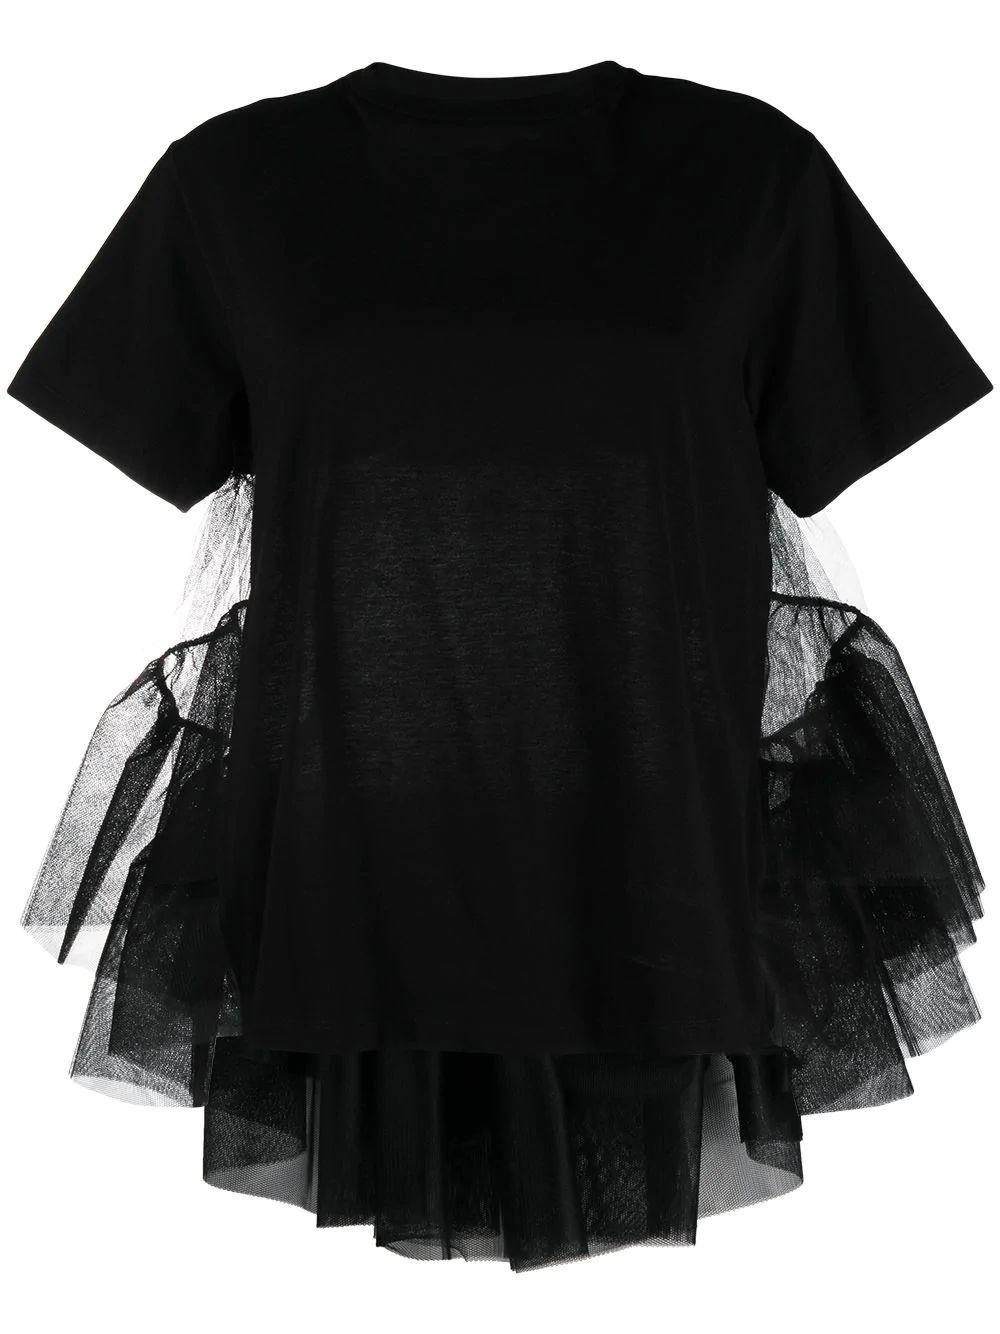 T- Shirt With Tulle Detail Item # 654009QLAAA